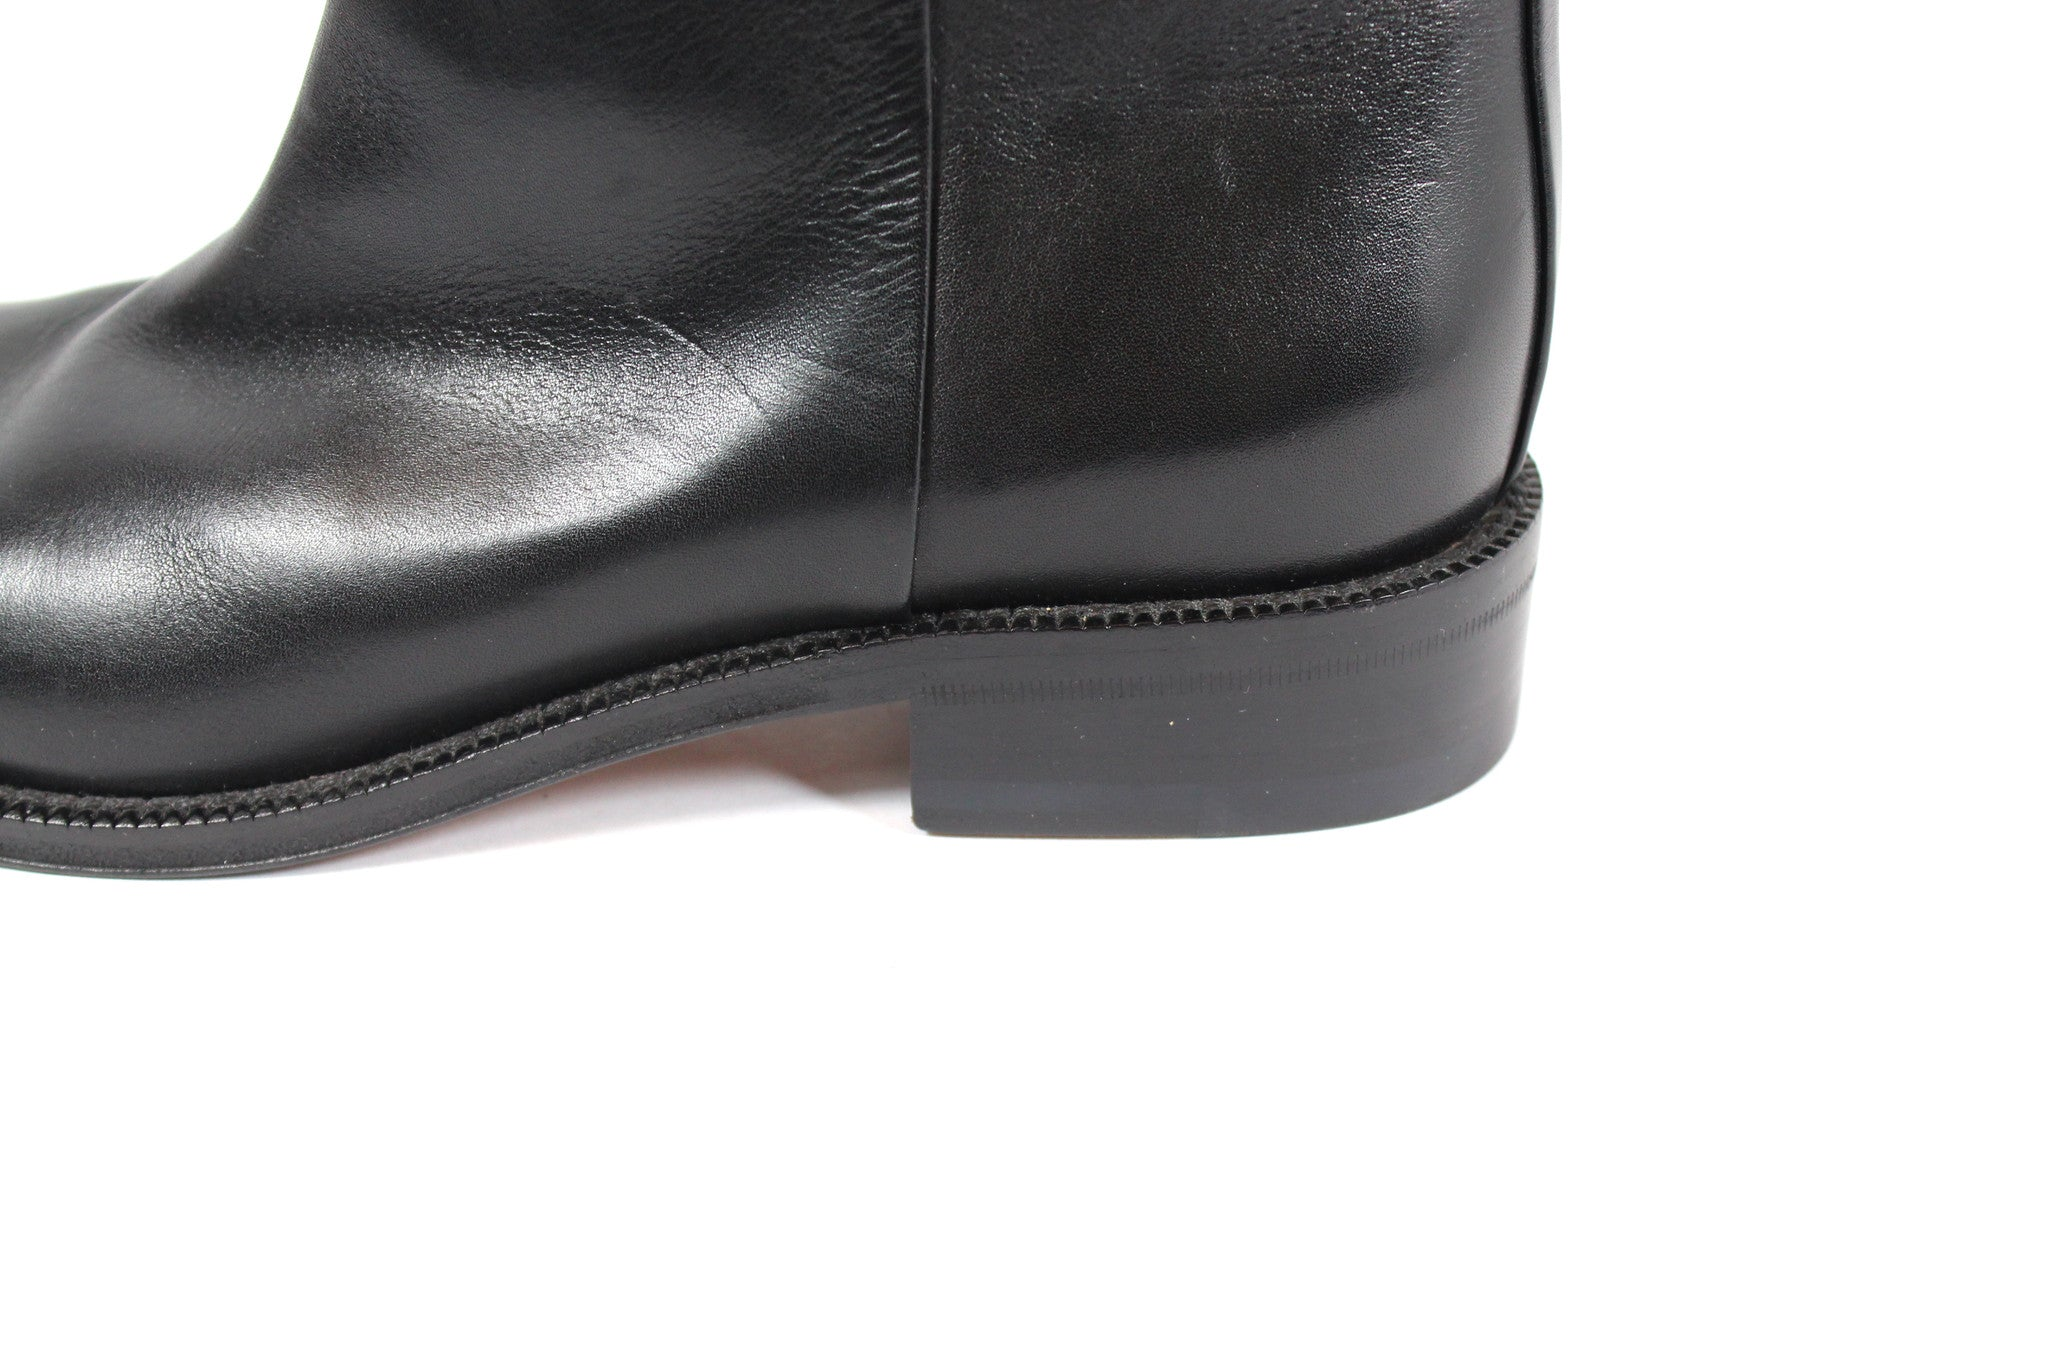 Celine Black Leather Slip On Boots (Size 37.5) - Encore Consignment - 5